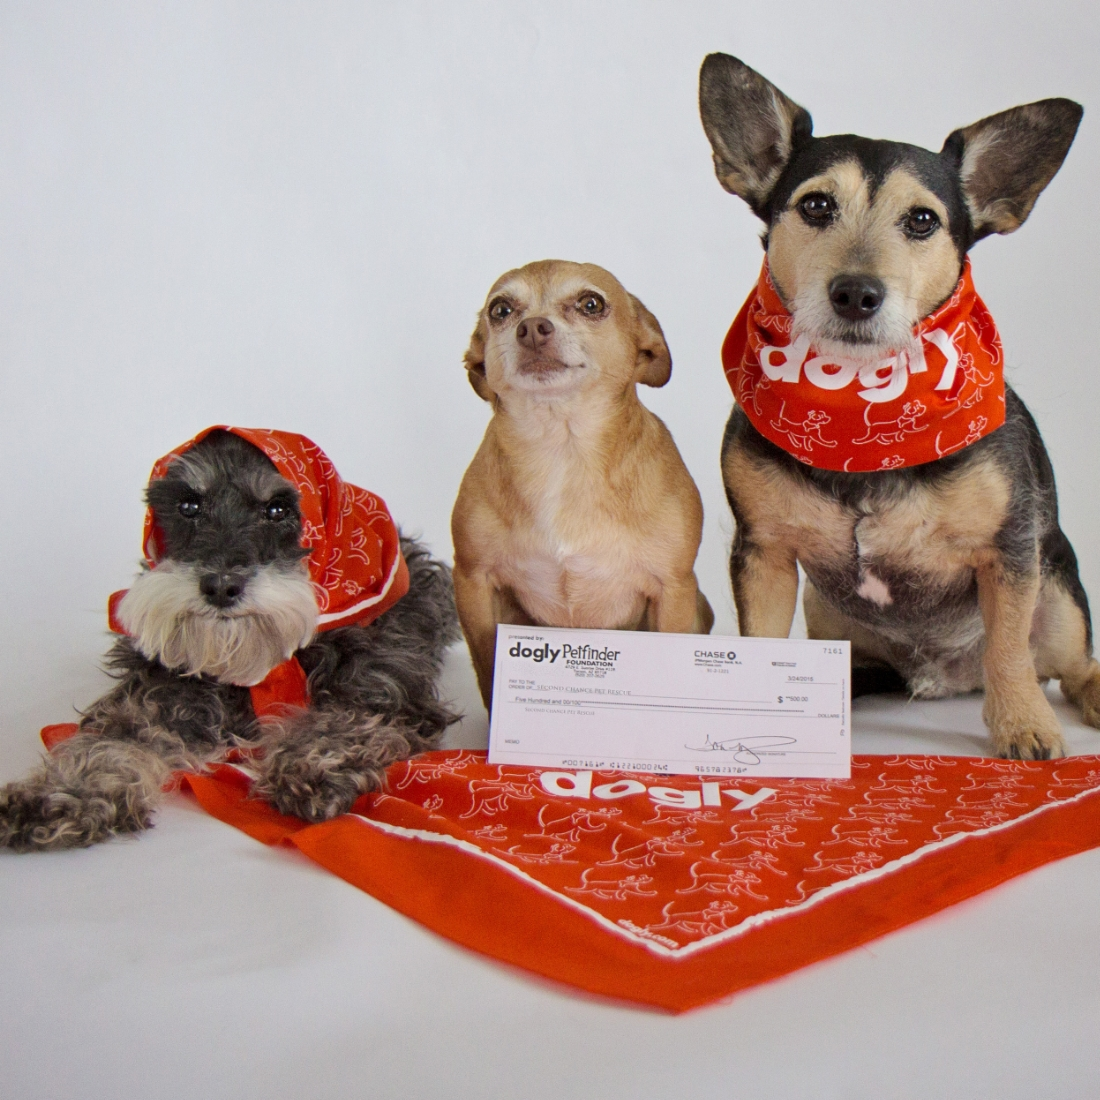 Check out the amazing new rescue app  DOGLY   -where dogs help dogs and make their humans heroes. Gracie, Mini, and Davey delivering the $500 Dogly Do Good grant PawsofOz earned for their creativity on Dogly to Holly's hometown shelter Second Chance Pet Rescue of Grand Lake. Four times a month,  creators  are recognized for their exceptional photos on Dogly with grants in their names to their chosen shelters. Dogly is a free download on iOS and Android. More information:  Dogly.com  . @beingdogly on Instagram.